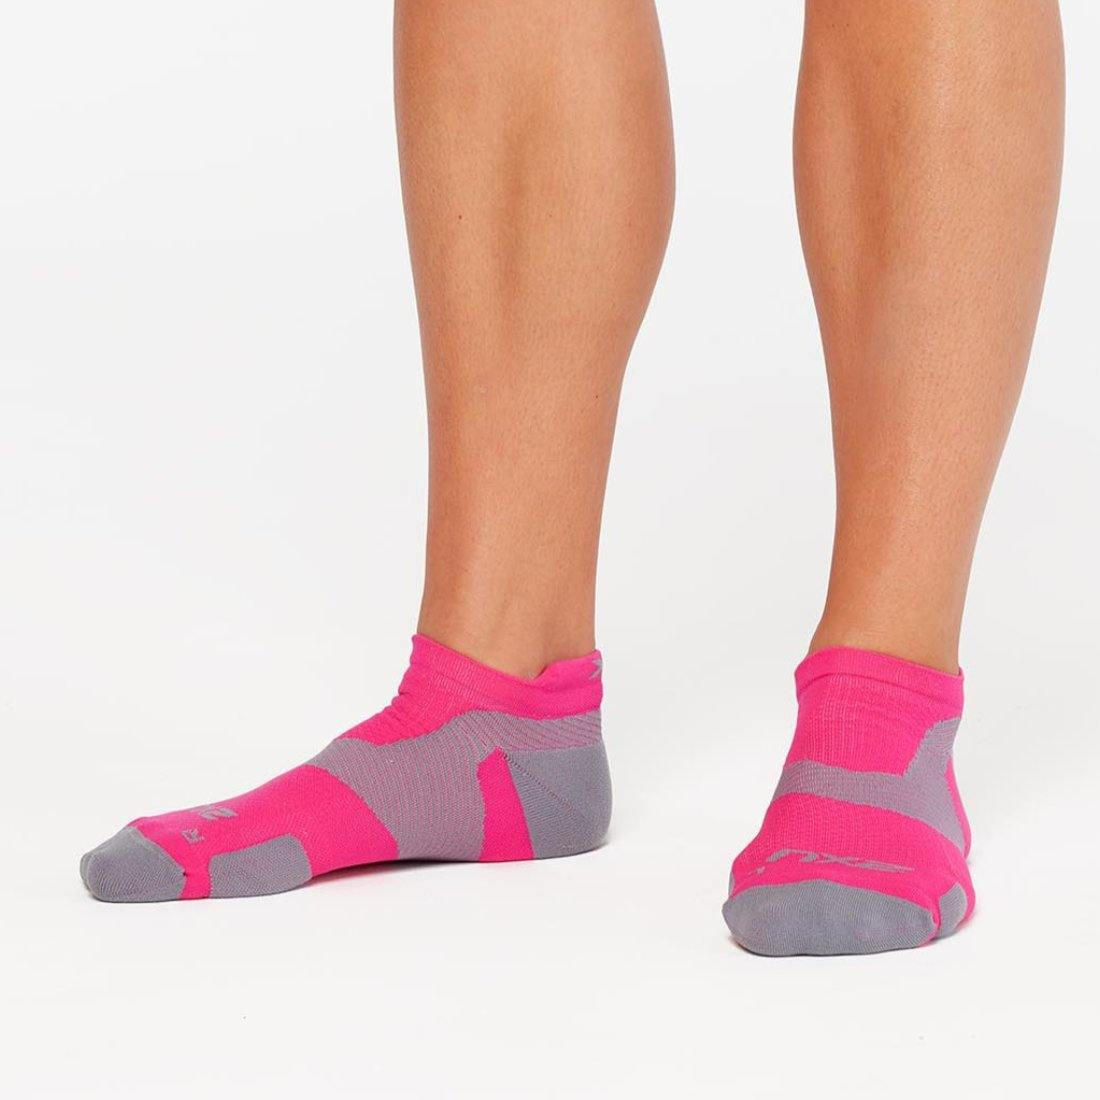 2XU Vectr Compression Socks | Light Cushion No Show Unisex Socks